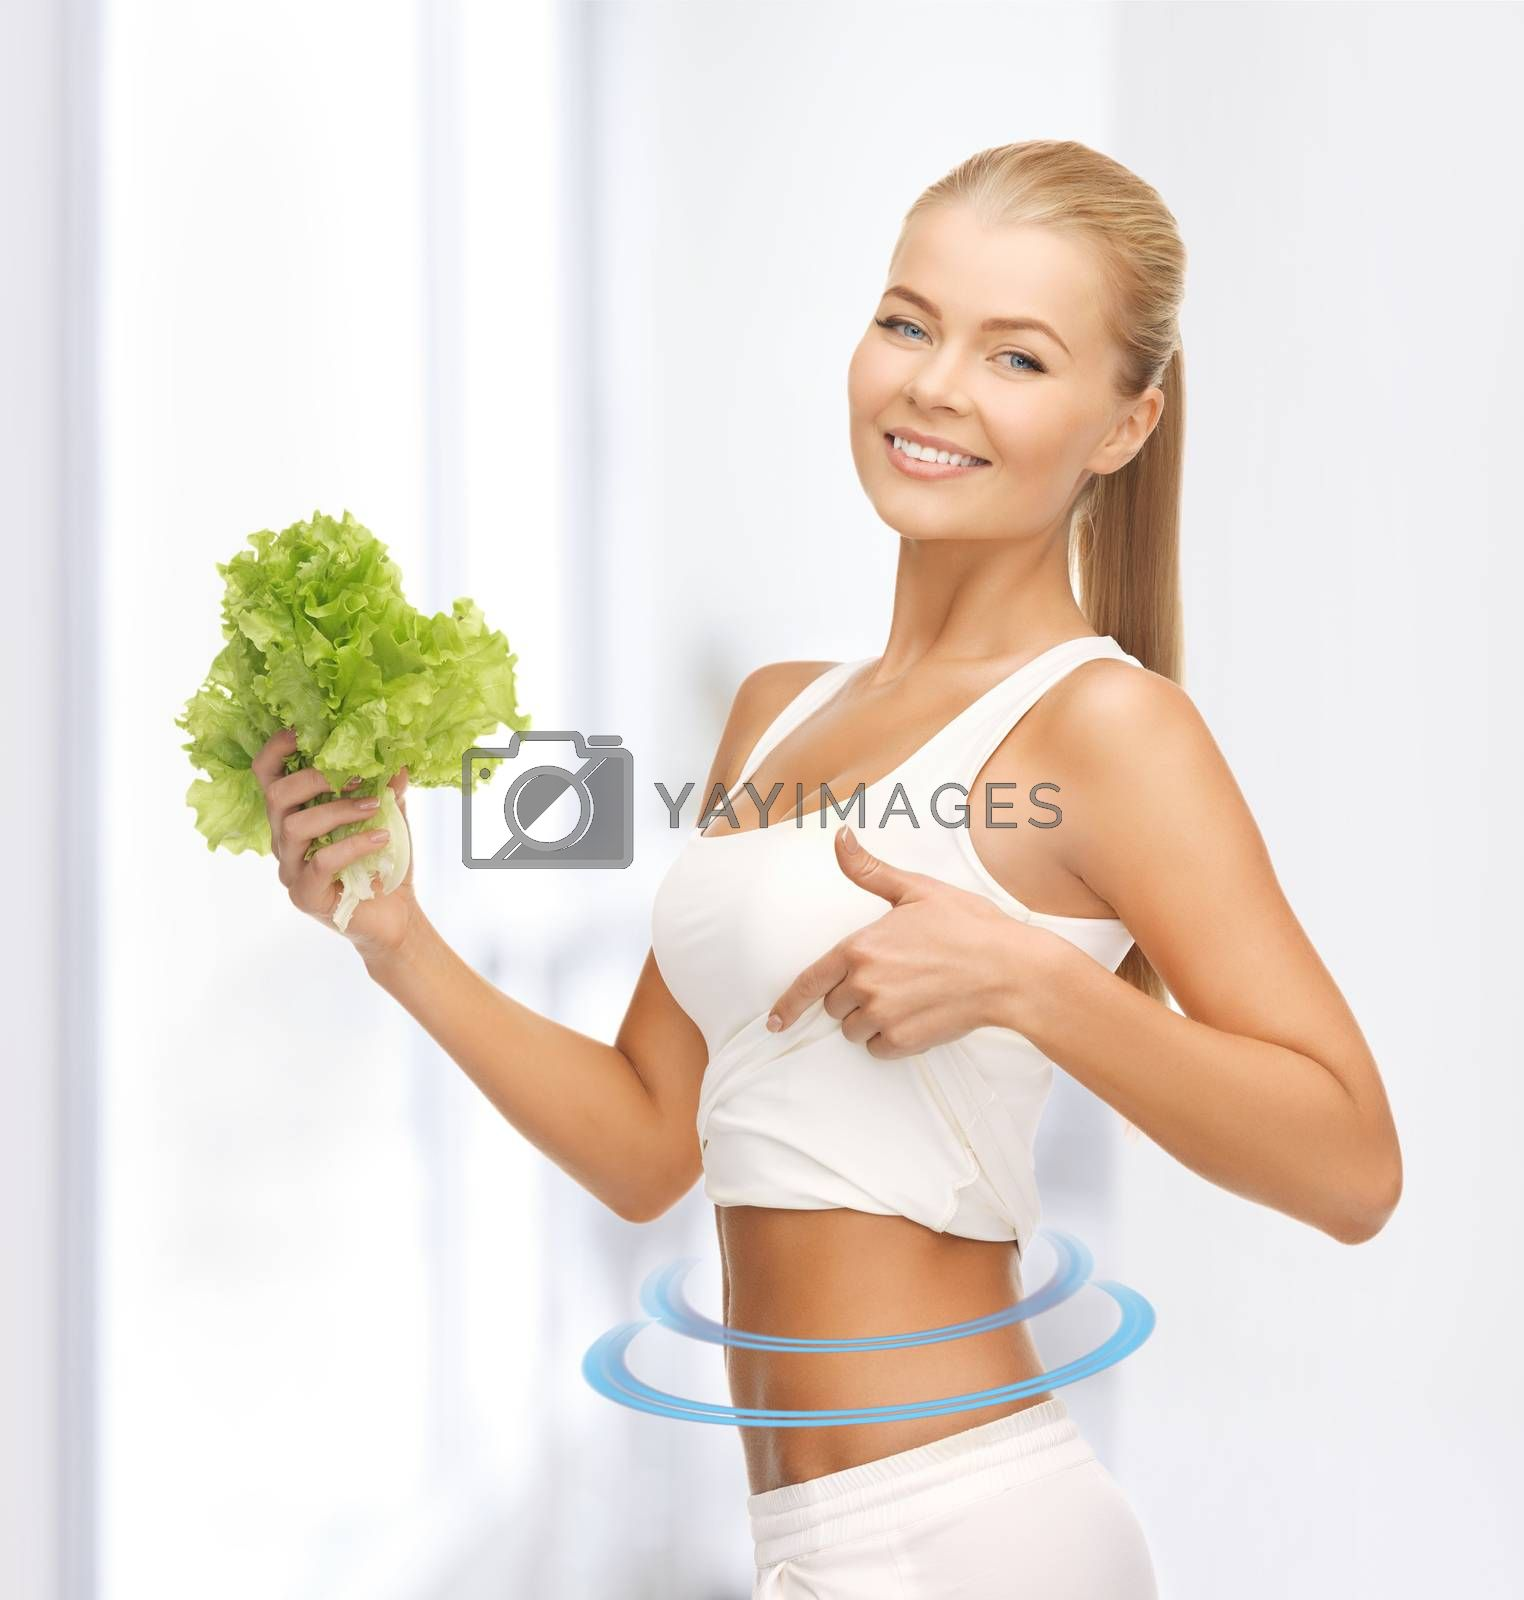 sporty woman with lettuce showing abs by dolgachov